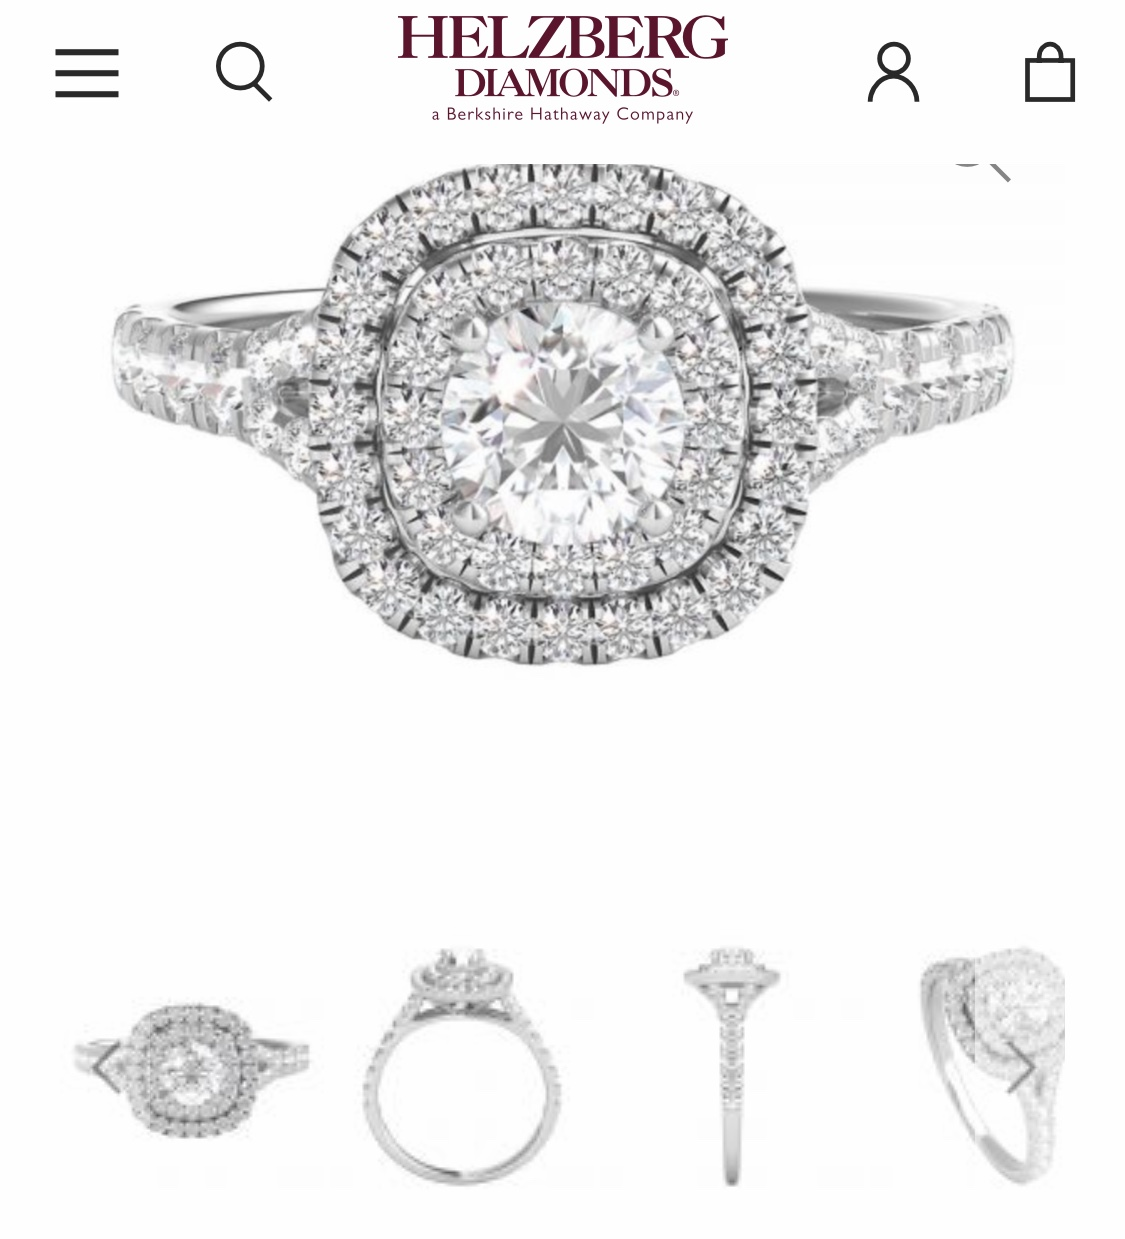 Helzberg Beautiful double halo